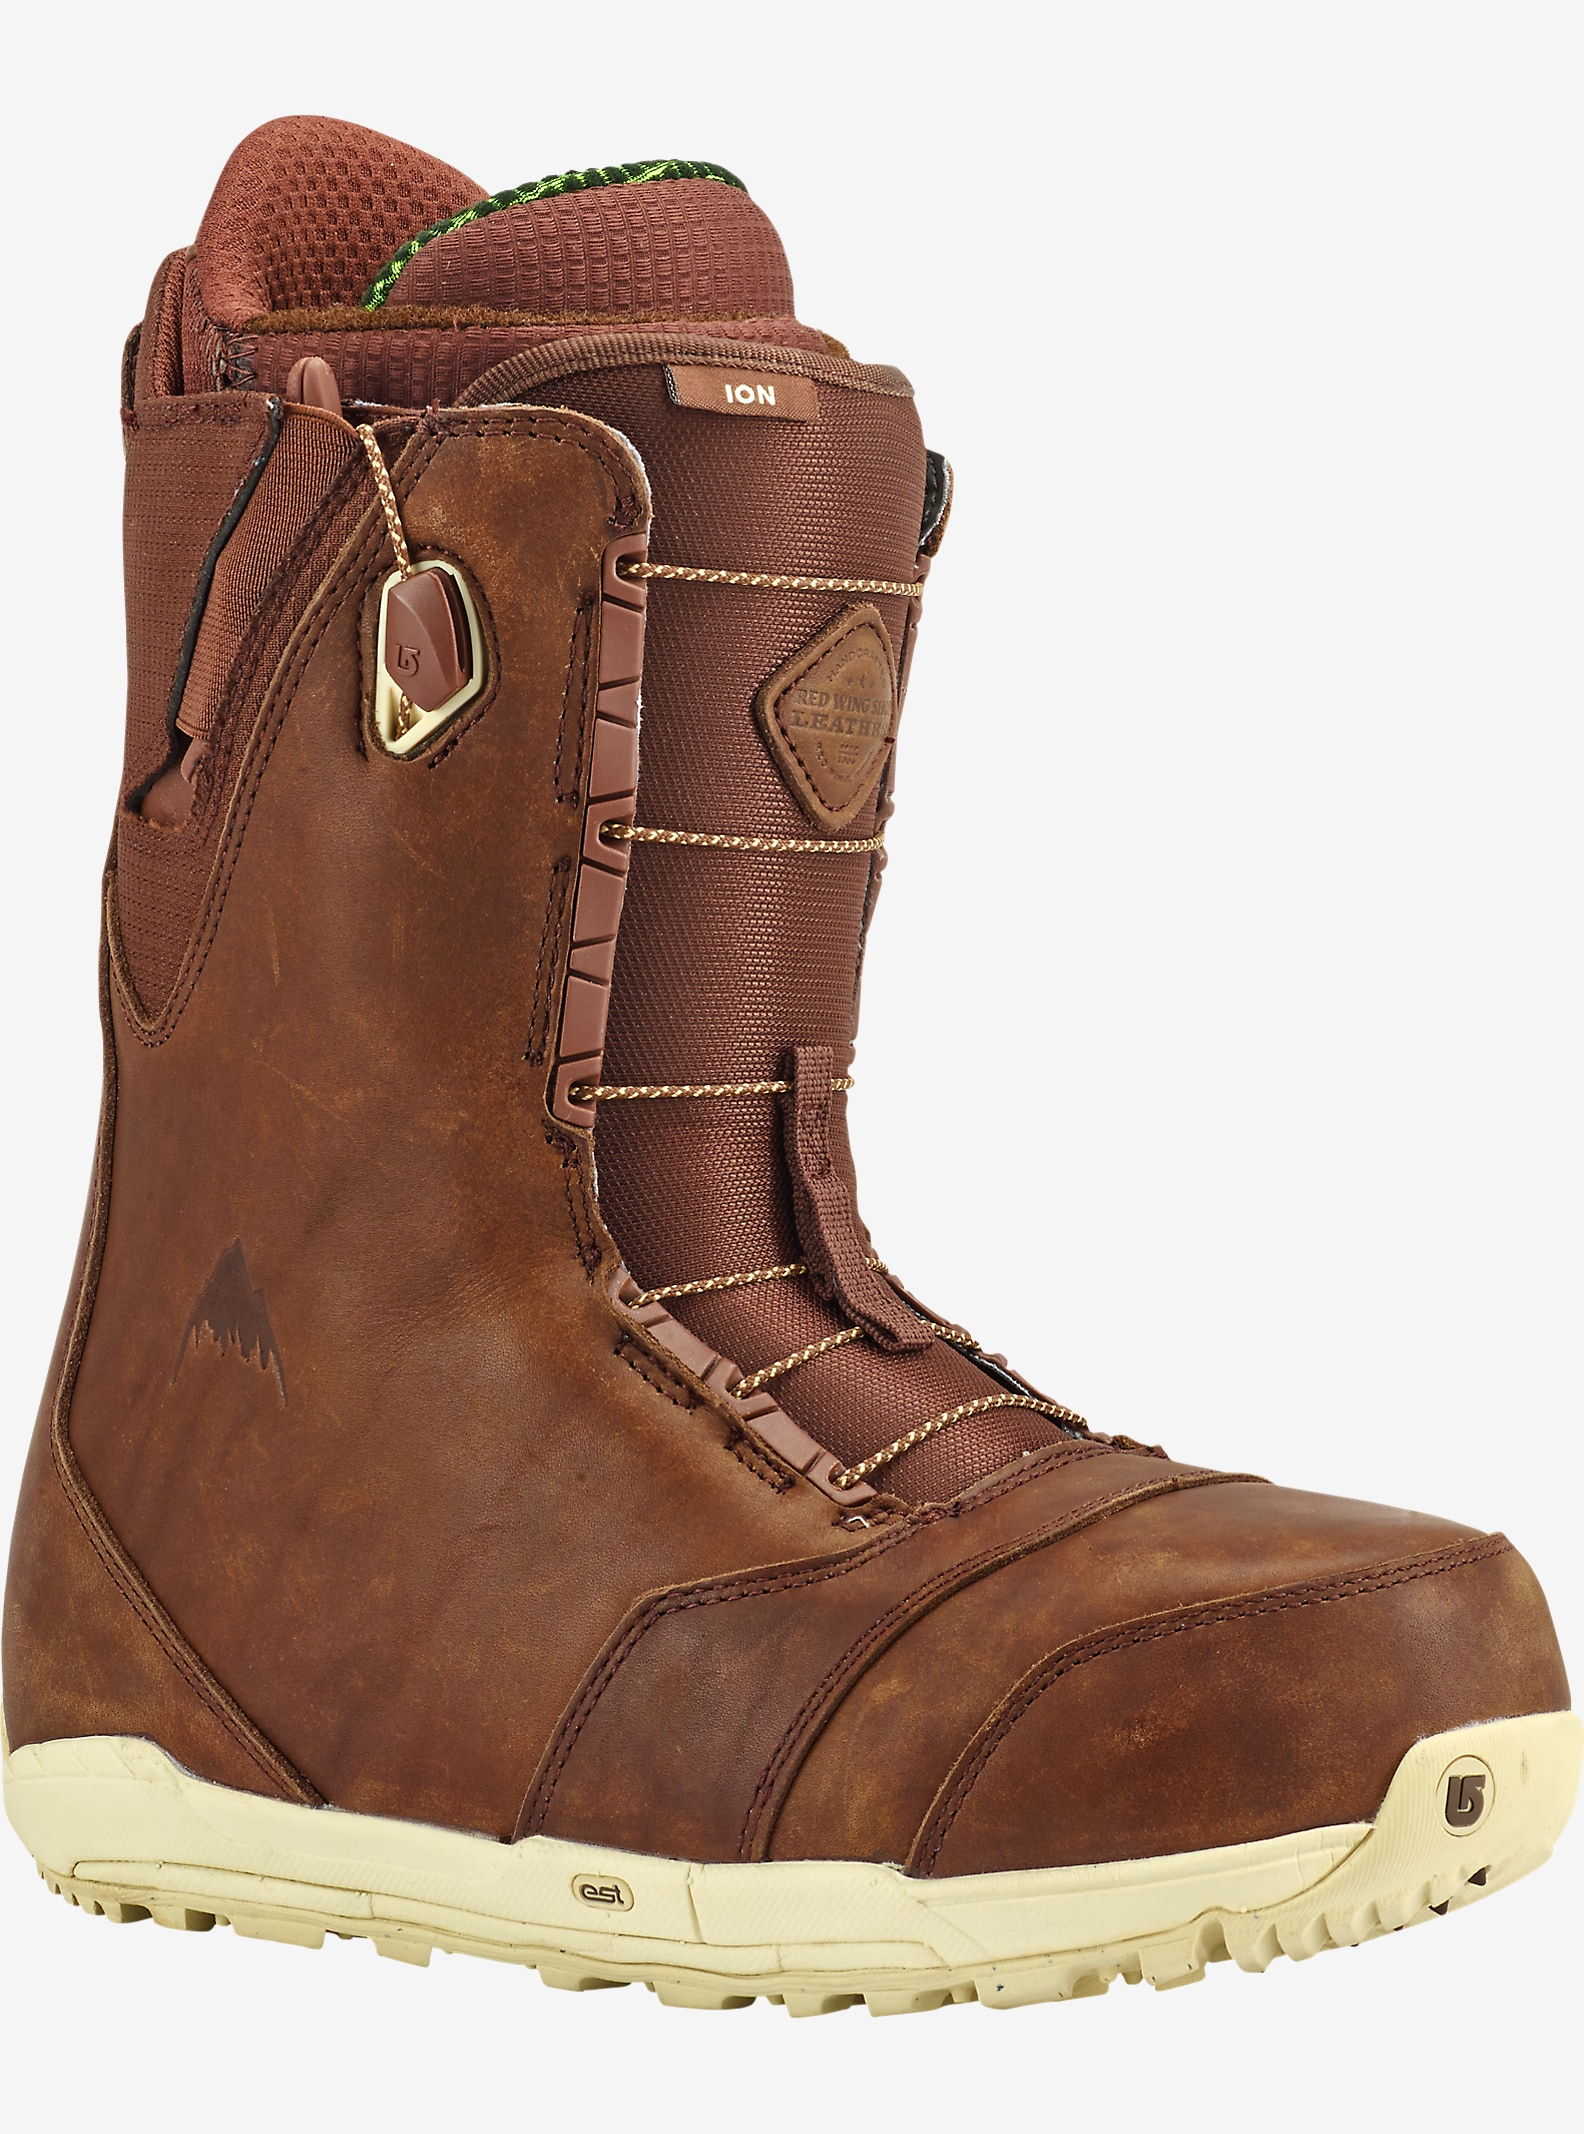 Red Wing® x Burton Ion Leather Snowboard Boot shown in Red Wing